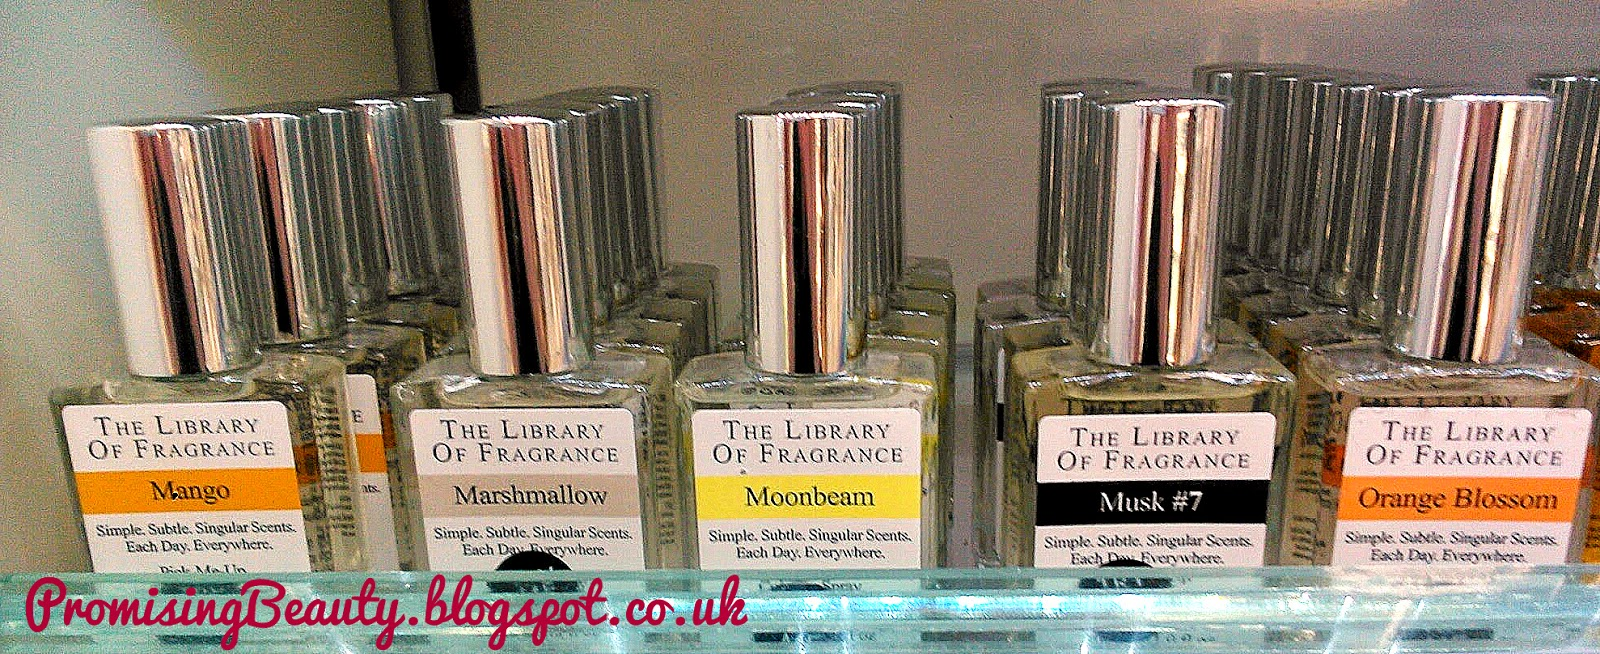 Mango, marshmallow, moonbeam, musk 7, orange blossom